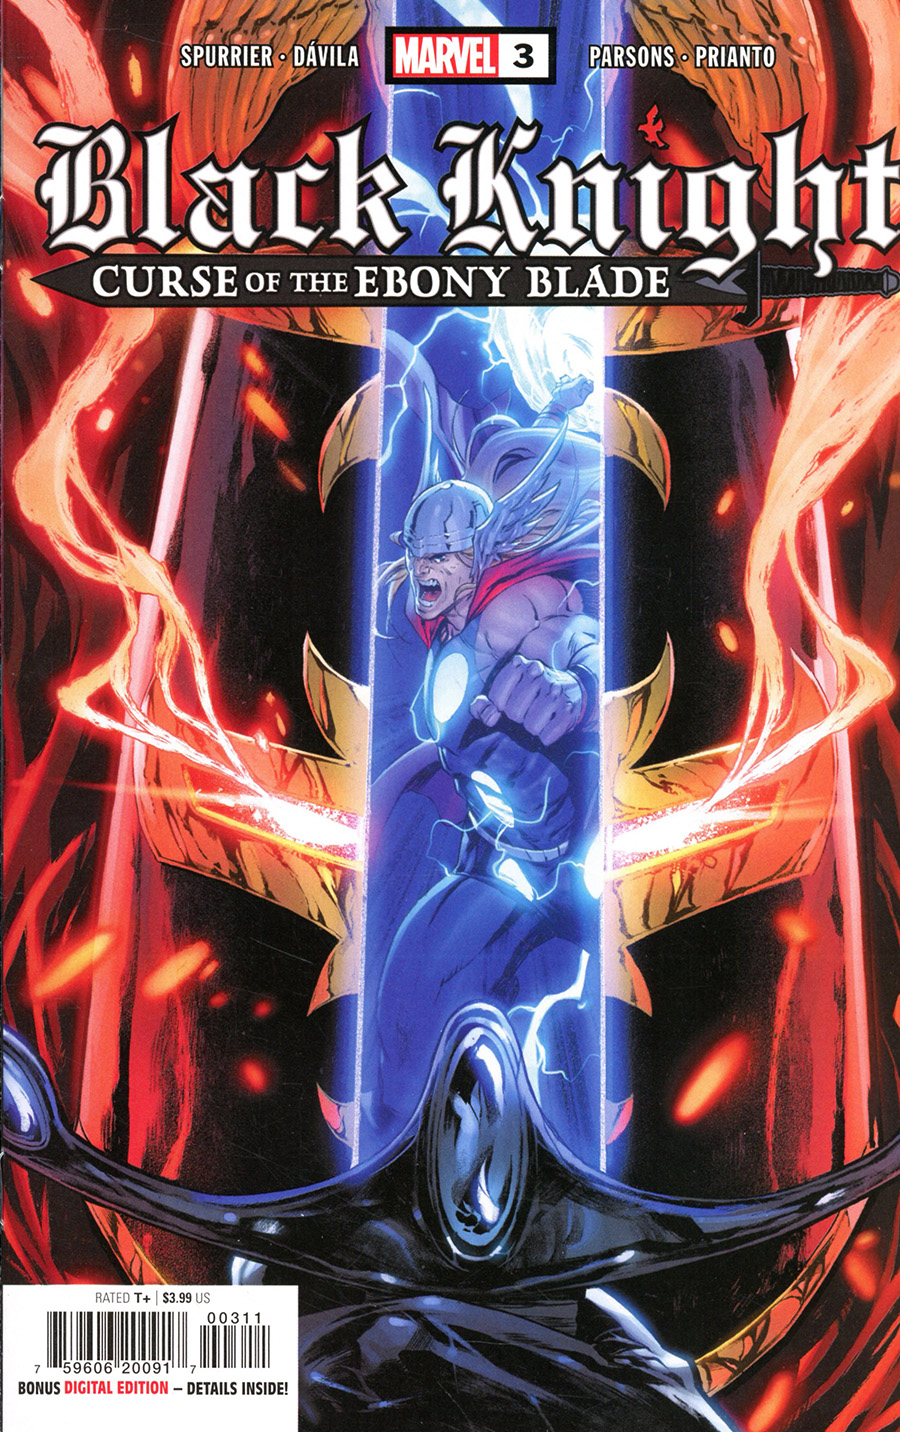 Black Knight Curse Of The Ebony Blade #3 Cover A Regular Iban Coello Cover